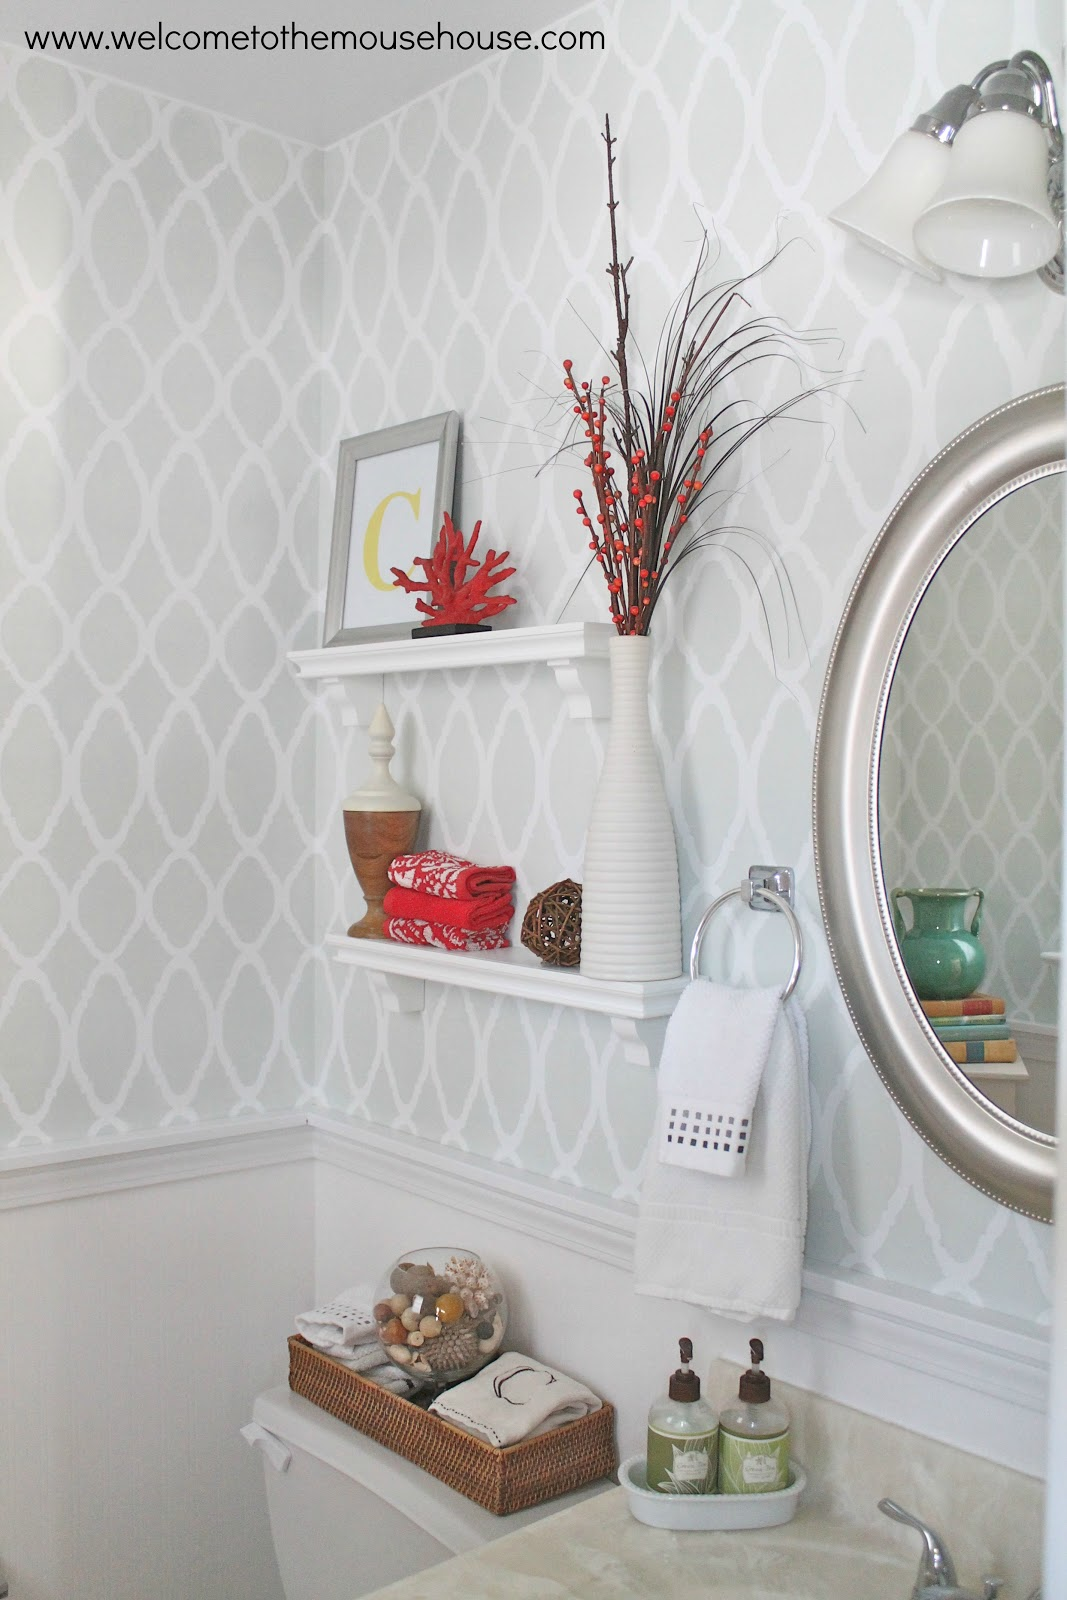 The Powder Room Reveal